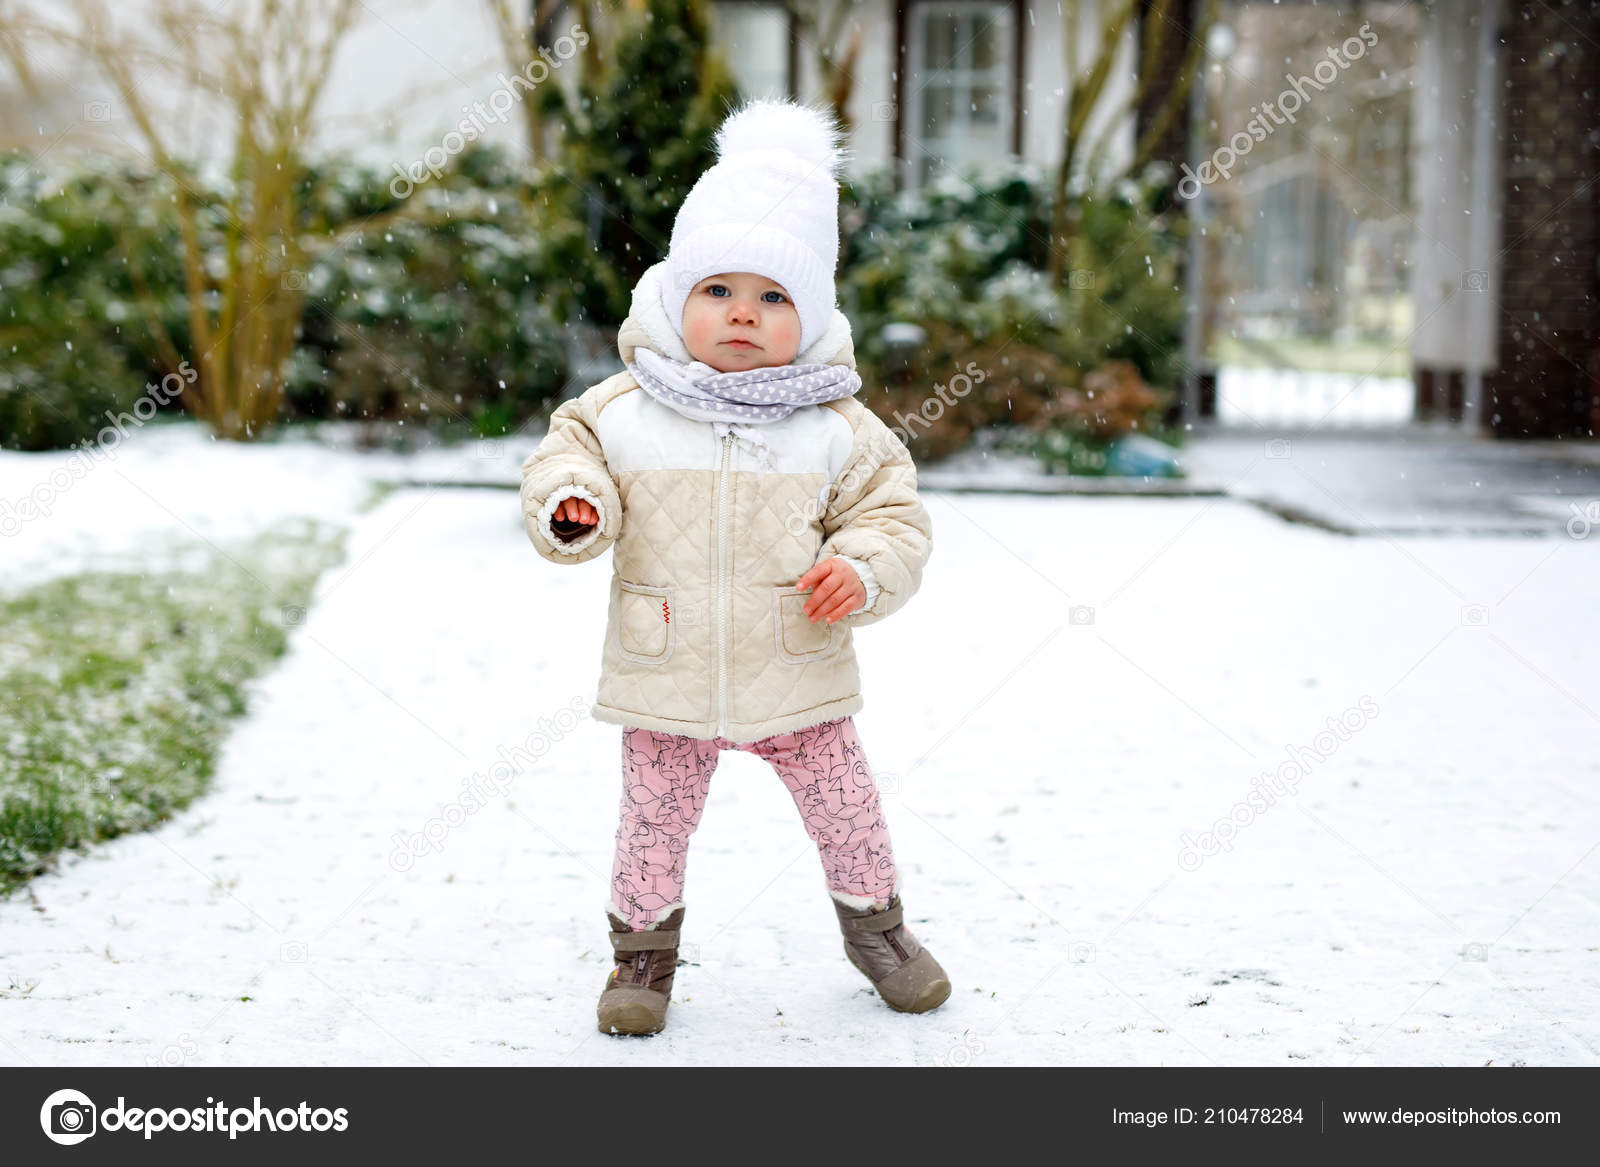 07454301b169 Adorable little baby girl making first steps outdoors in winter ...